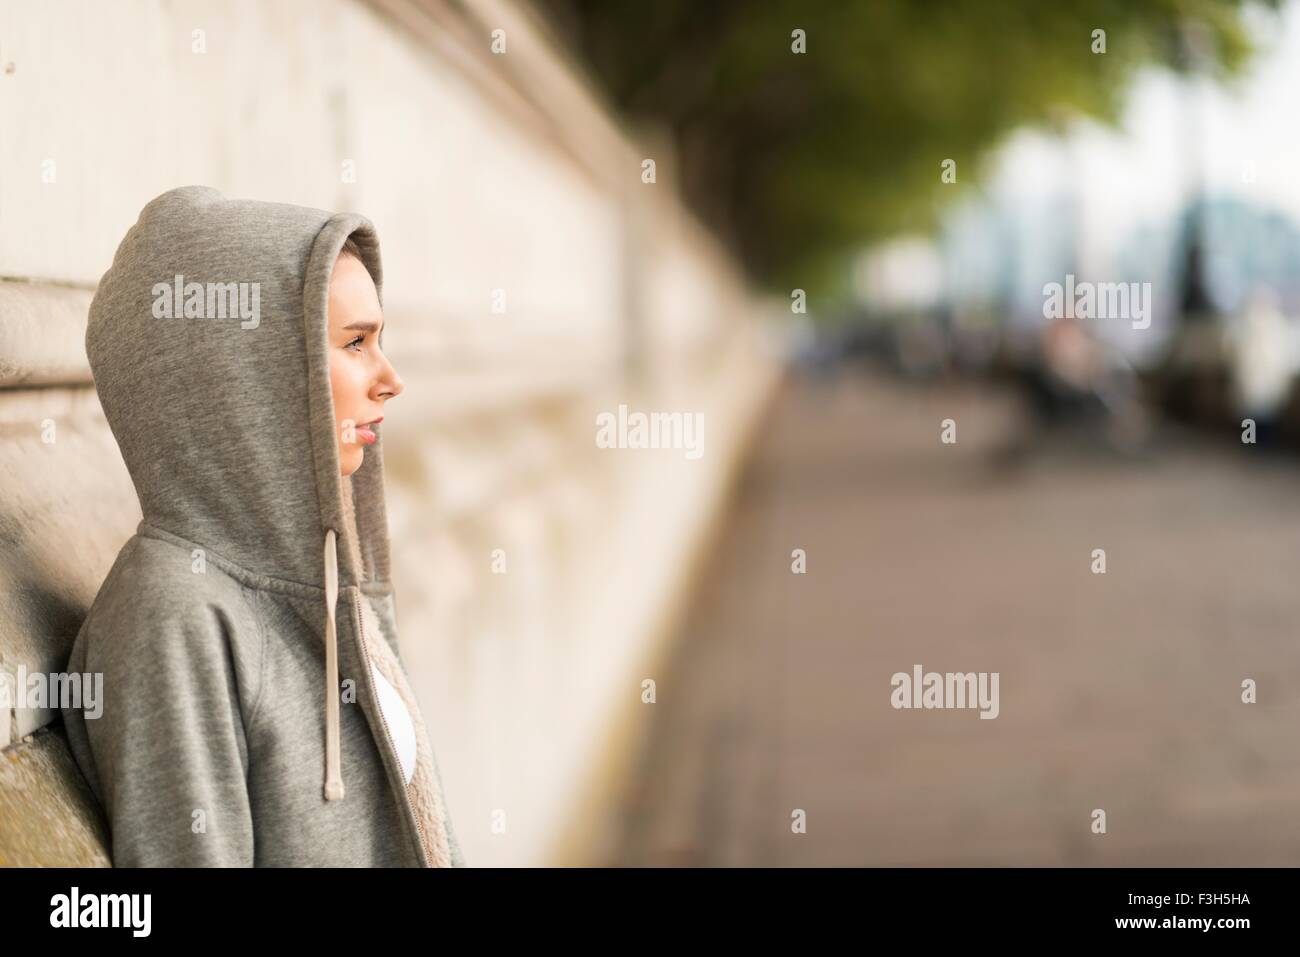 Young female wearing grey hoody looking out from riverside - Stock Image